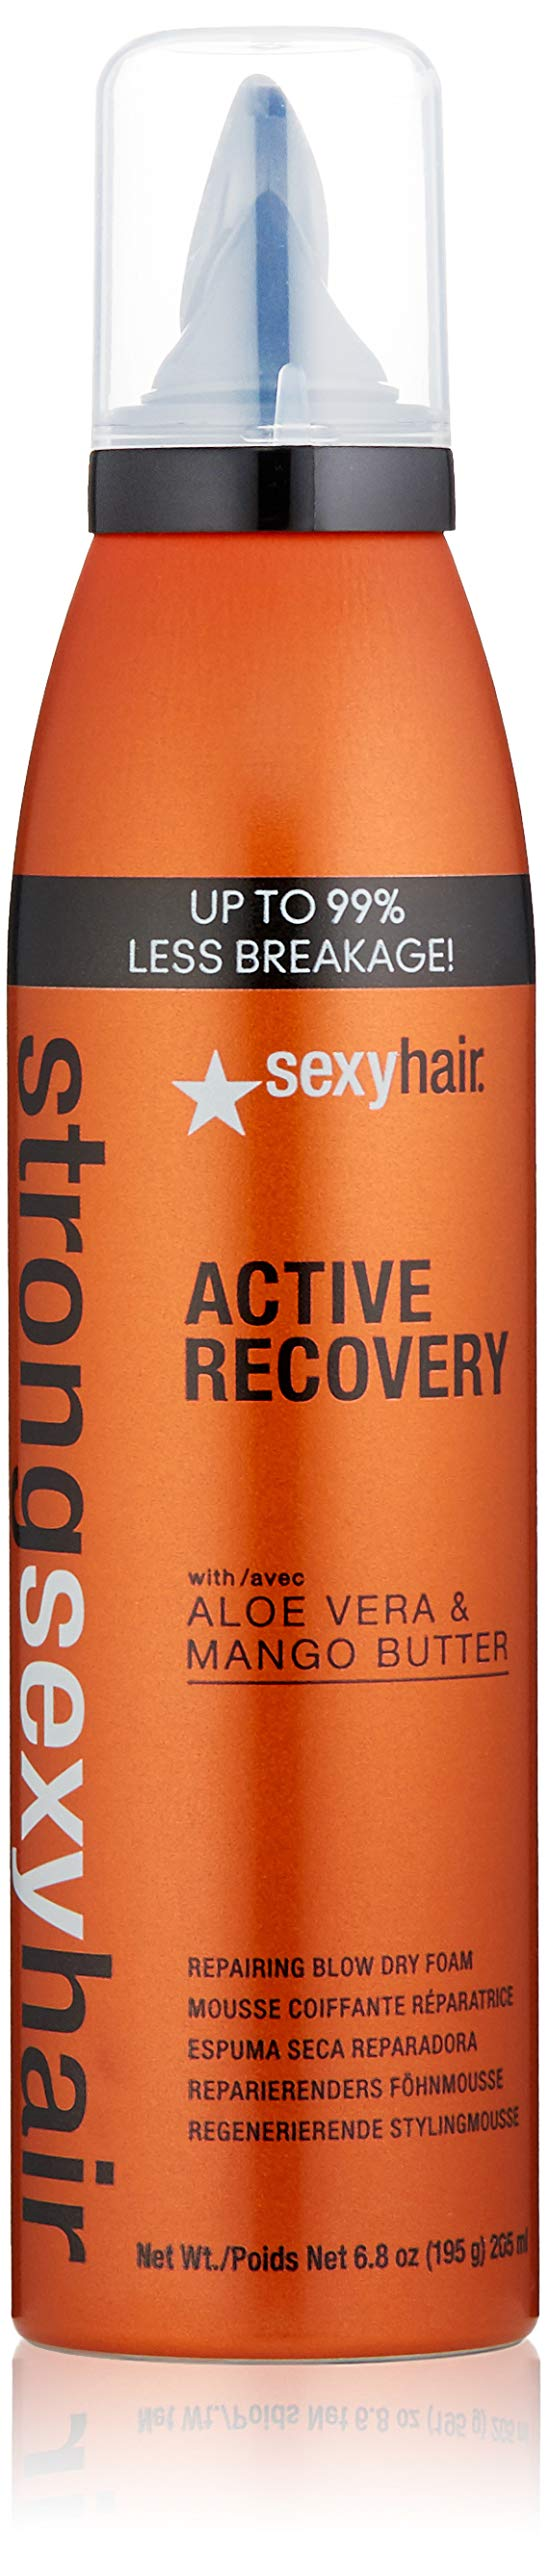 SEXYHAIR Strong Active Recovery Repairing Blow Dry Foam, 6.8 Fl Oz by SEXYHAIR